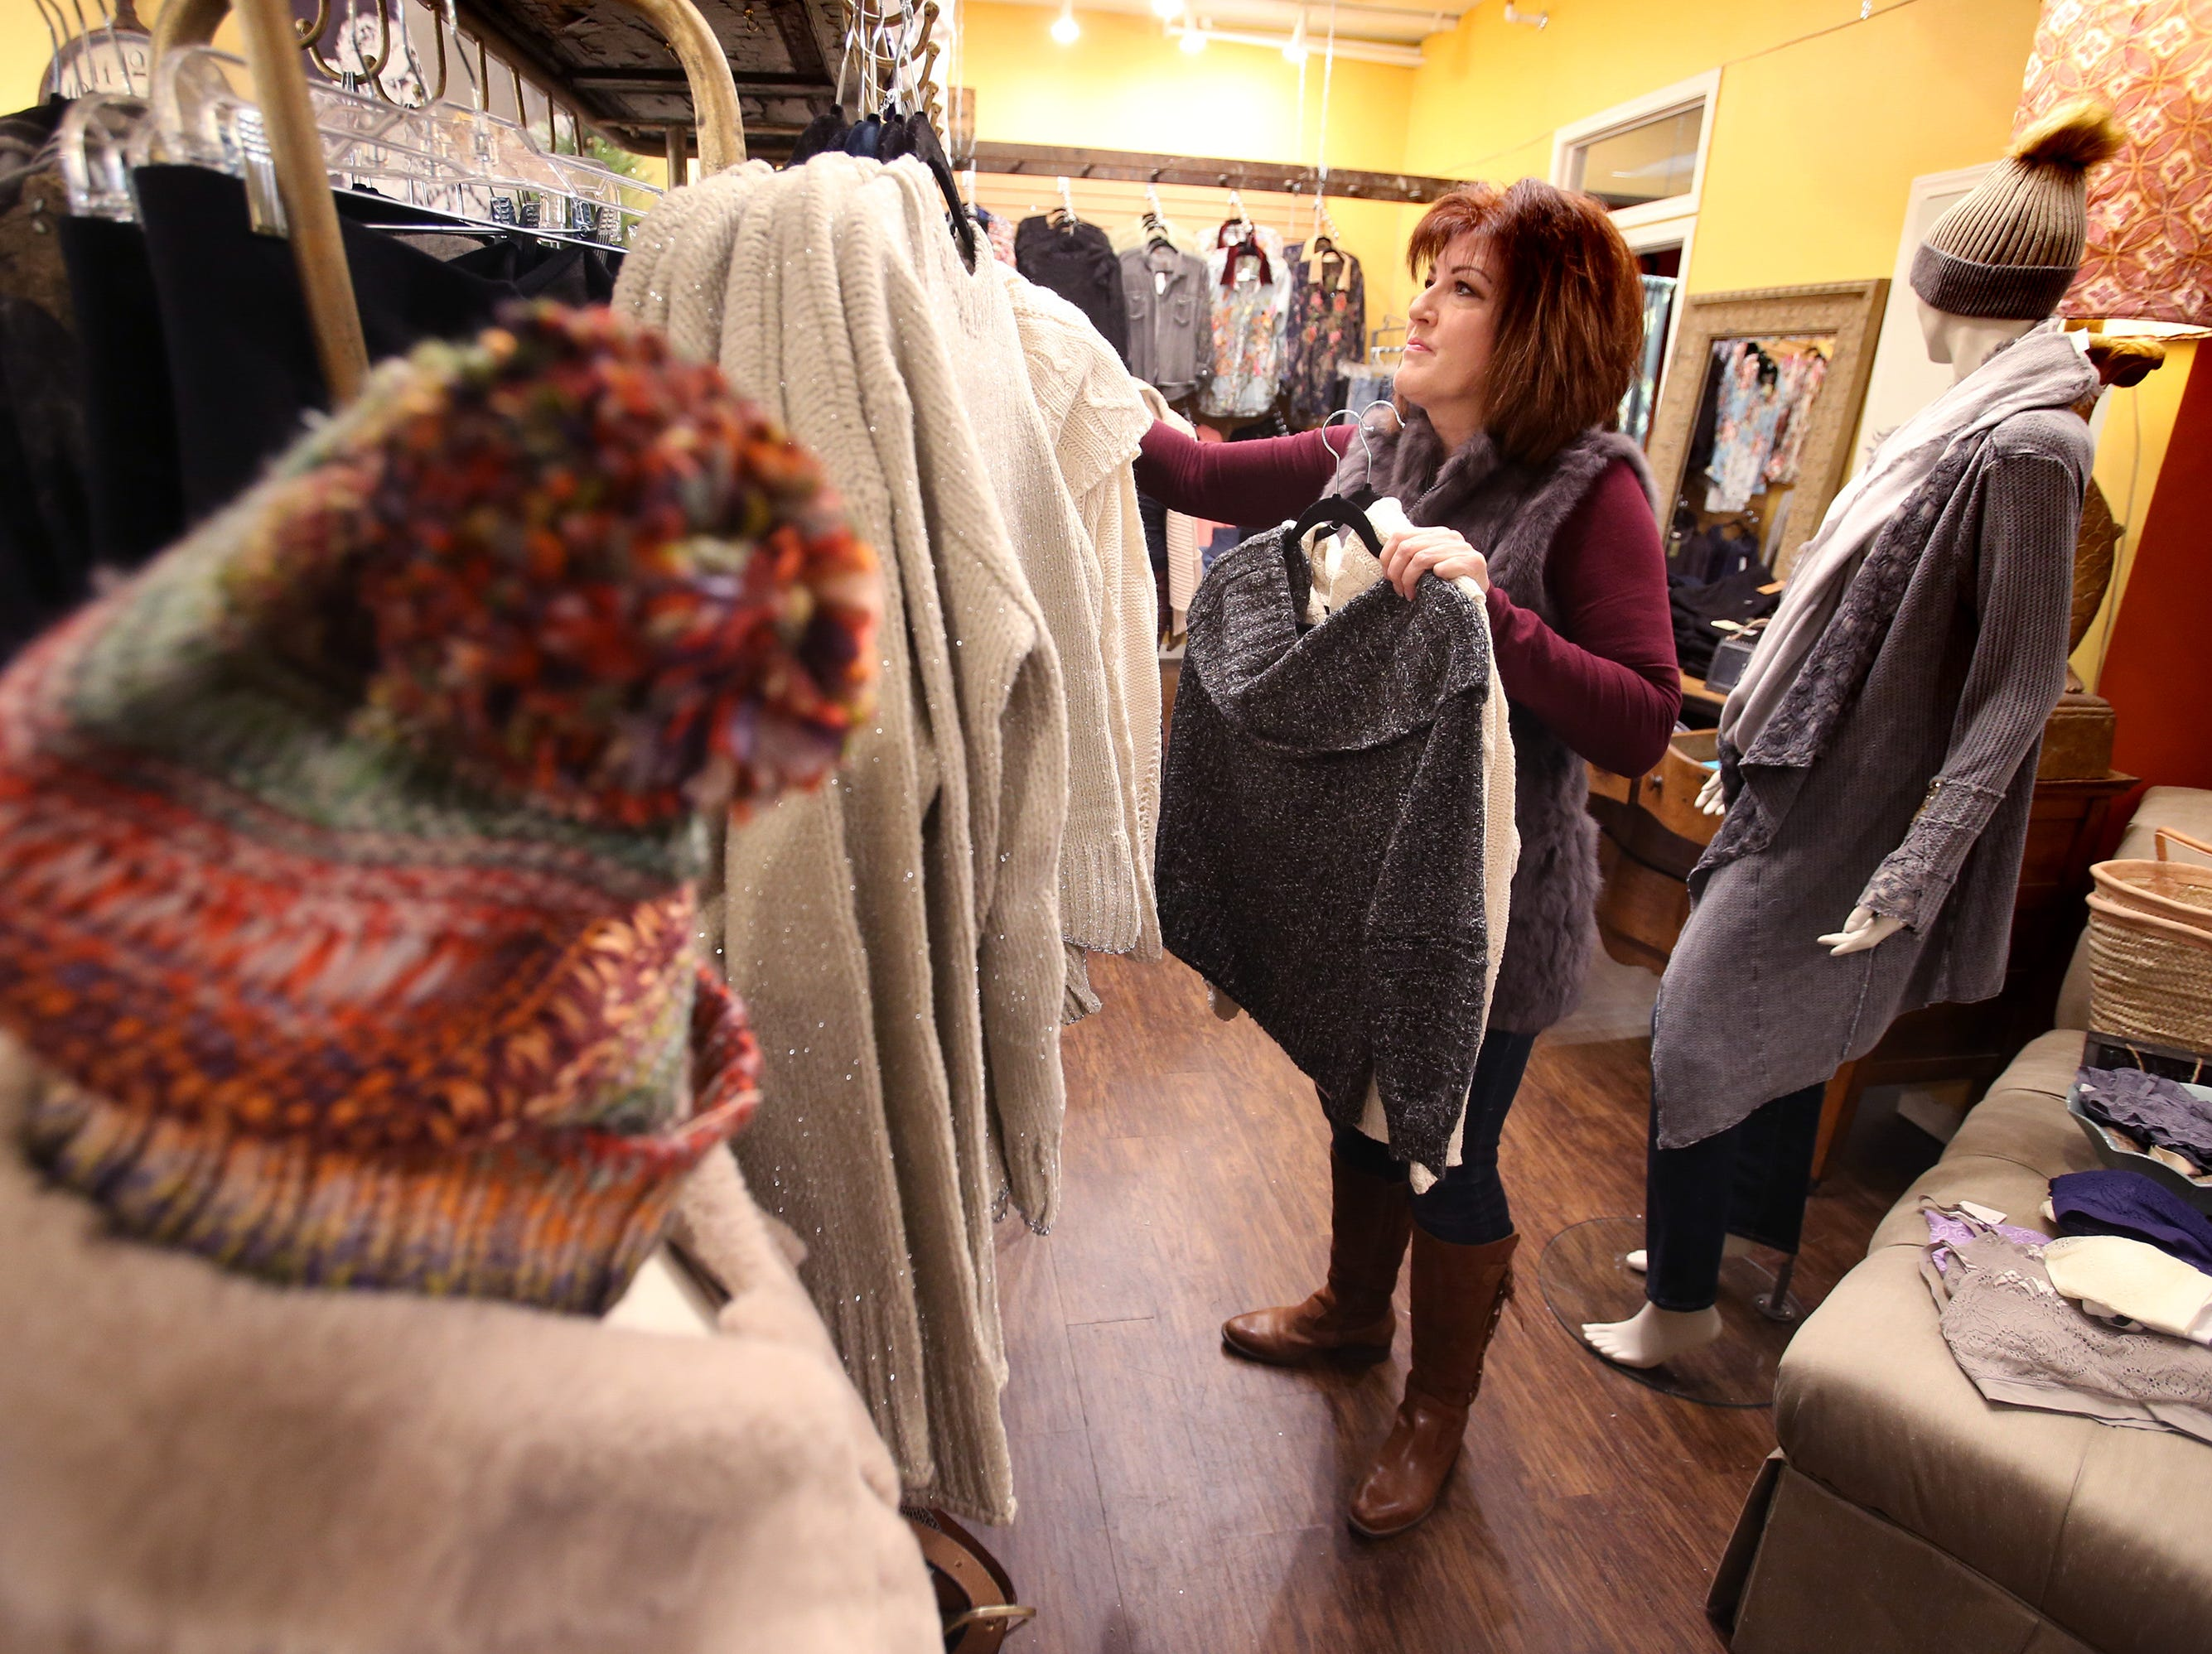 Kathy Keene, co-owner of Olive Branch Boutique at N88 W16598 Main St., resets the store's selection of women's clothing on Nov. 27 after a successful first weekend of the Christmas shopping season.